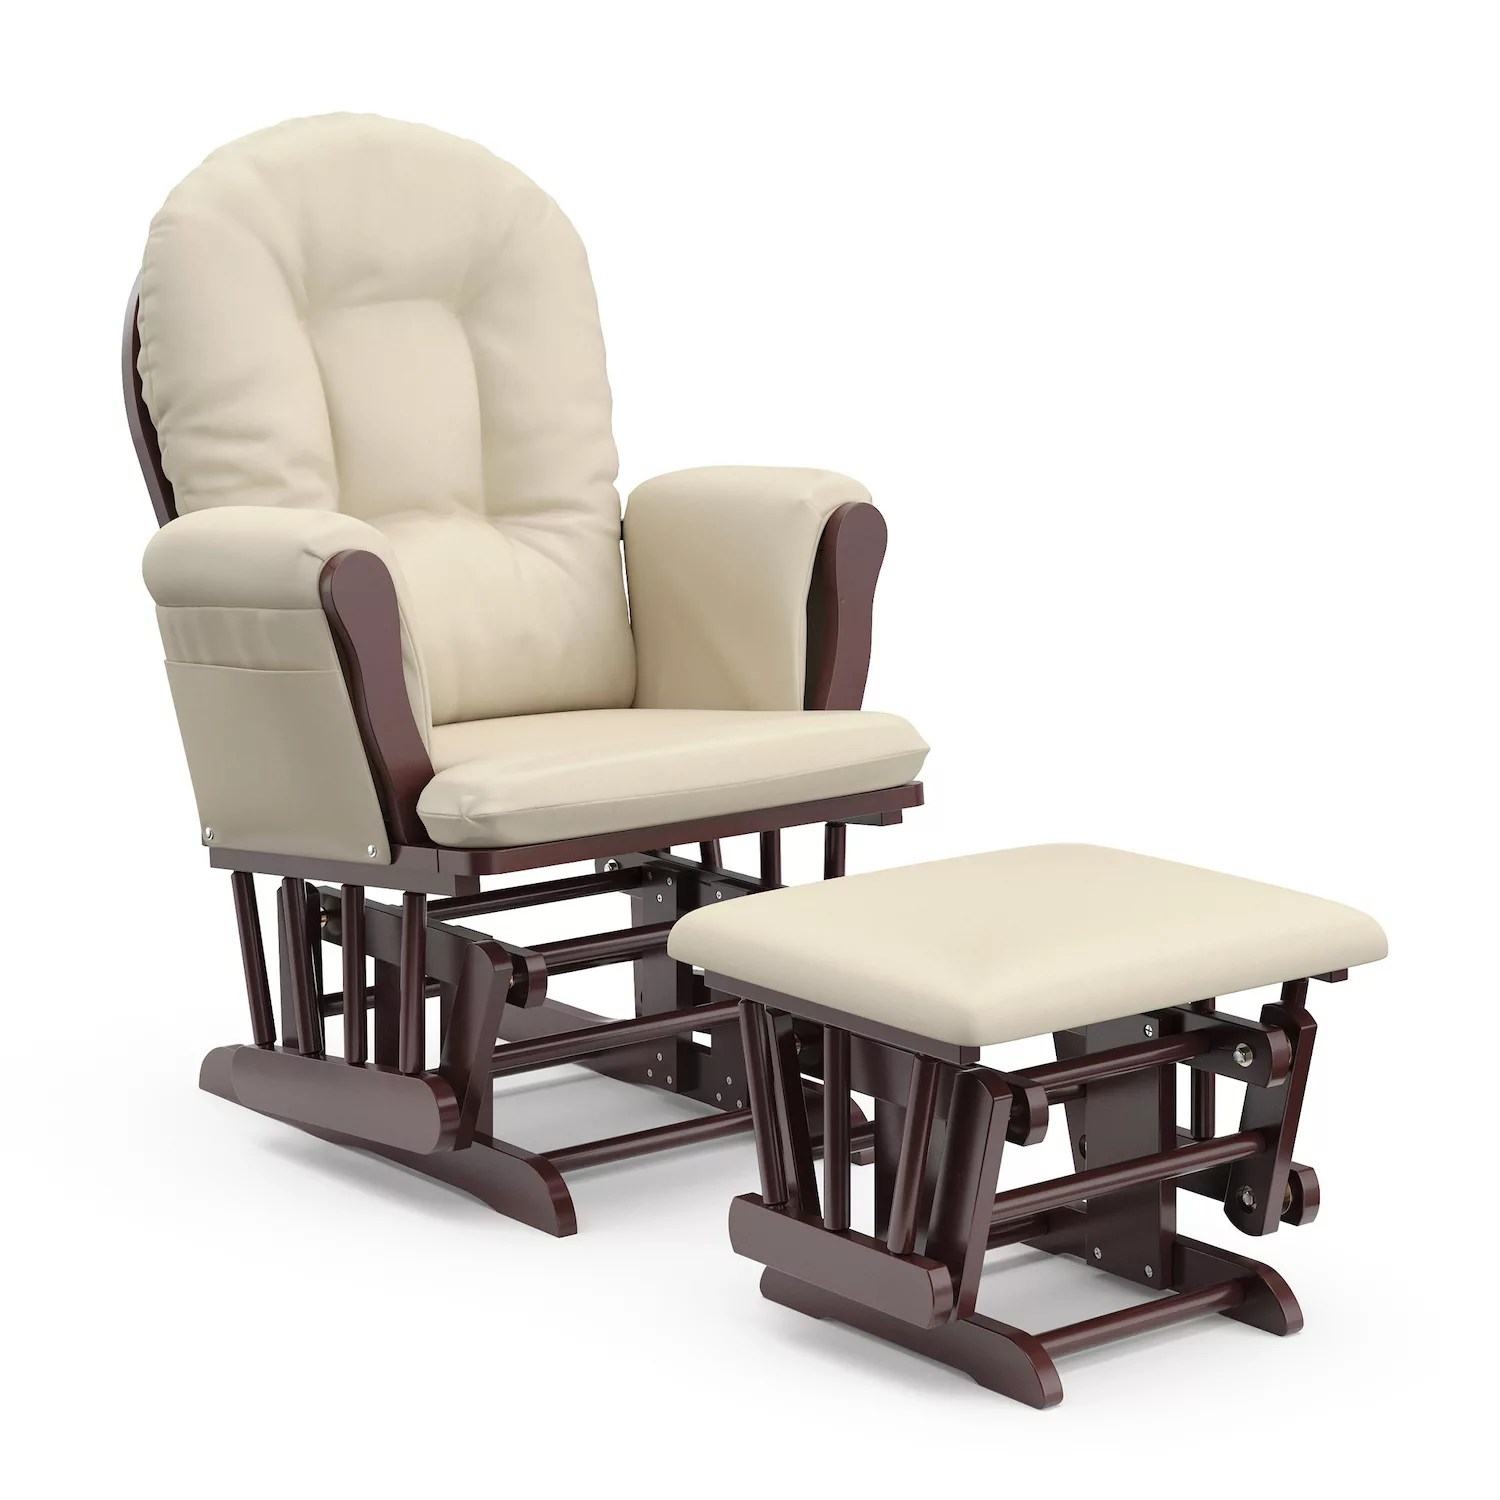 cheap glider chair wingback covers uk rocking chairs gliders nursery furniture baby gear kohl s stork craft hoop ottoman set